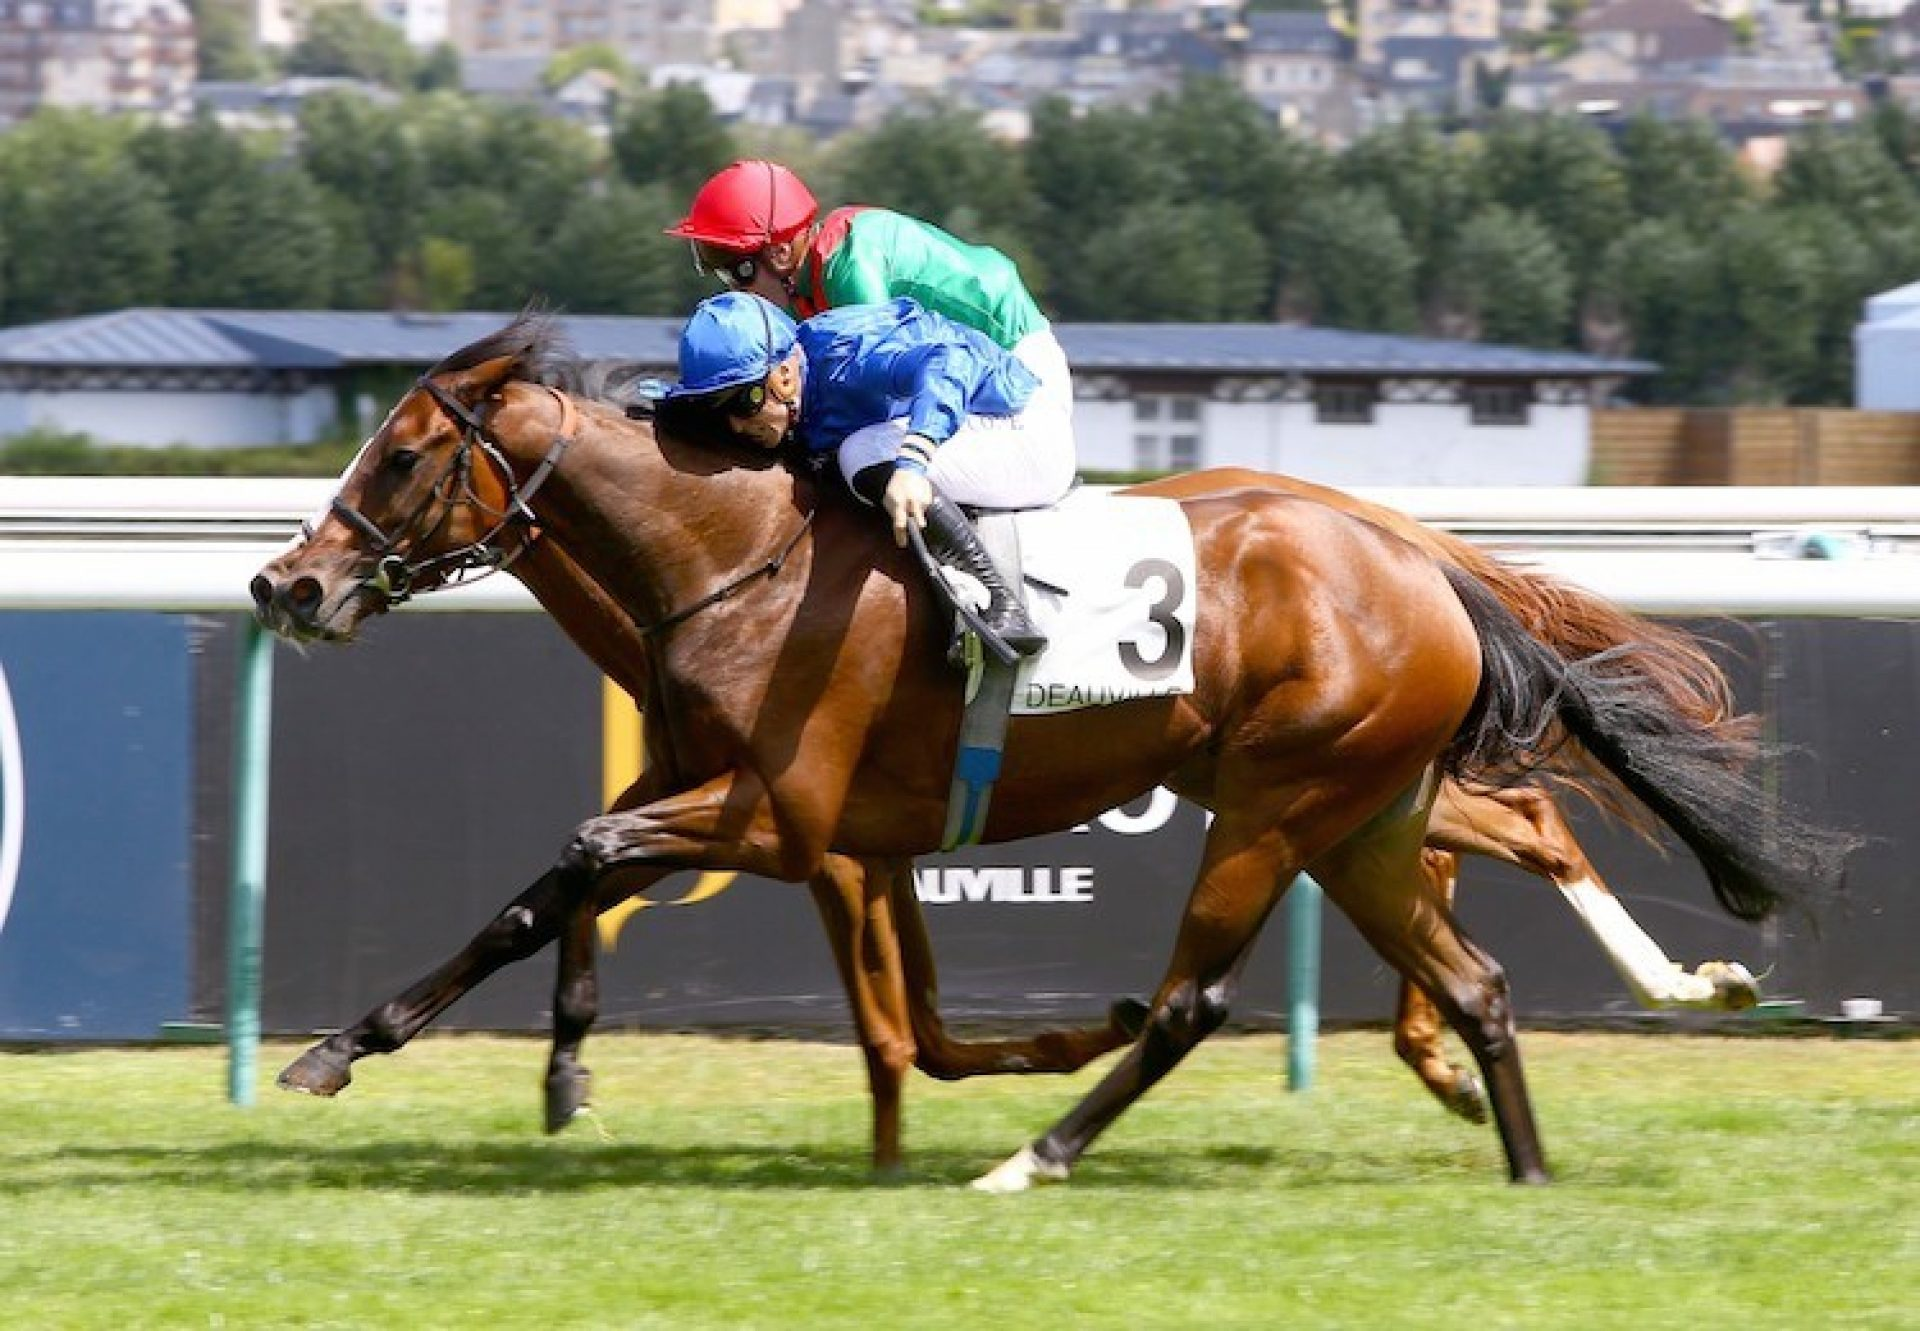 Beyond Reason (Australia) winning the G3 Prix Six Perfections at Deauville